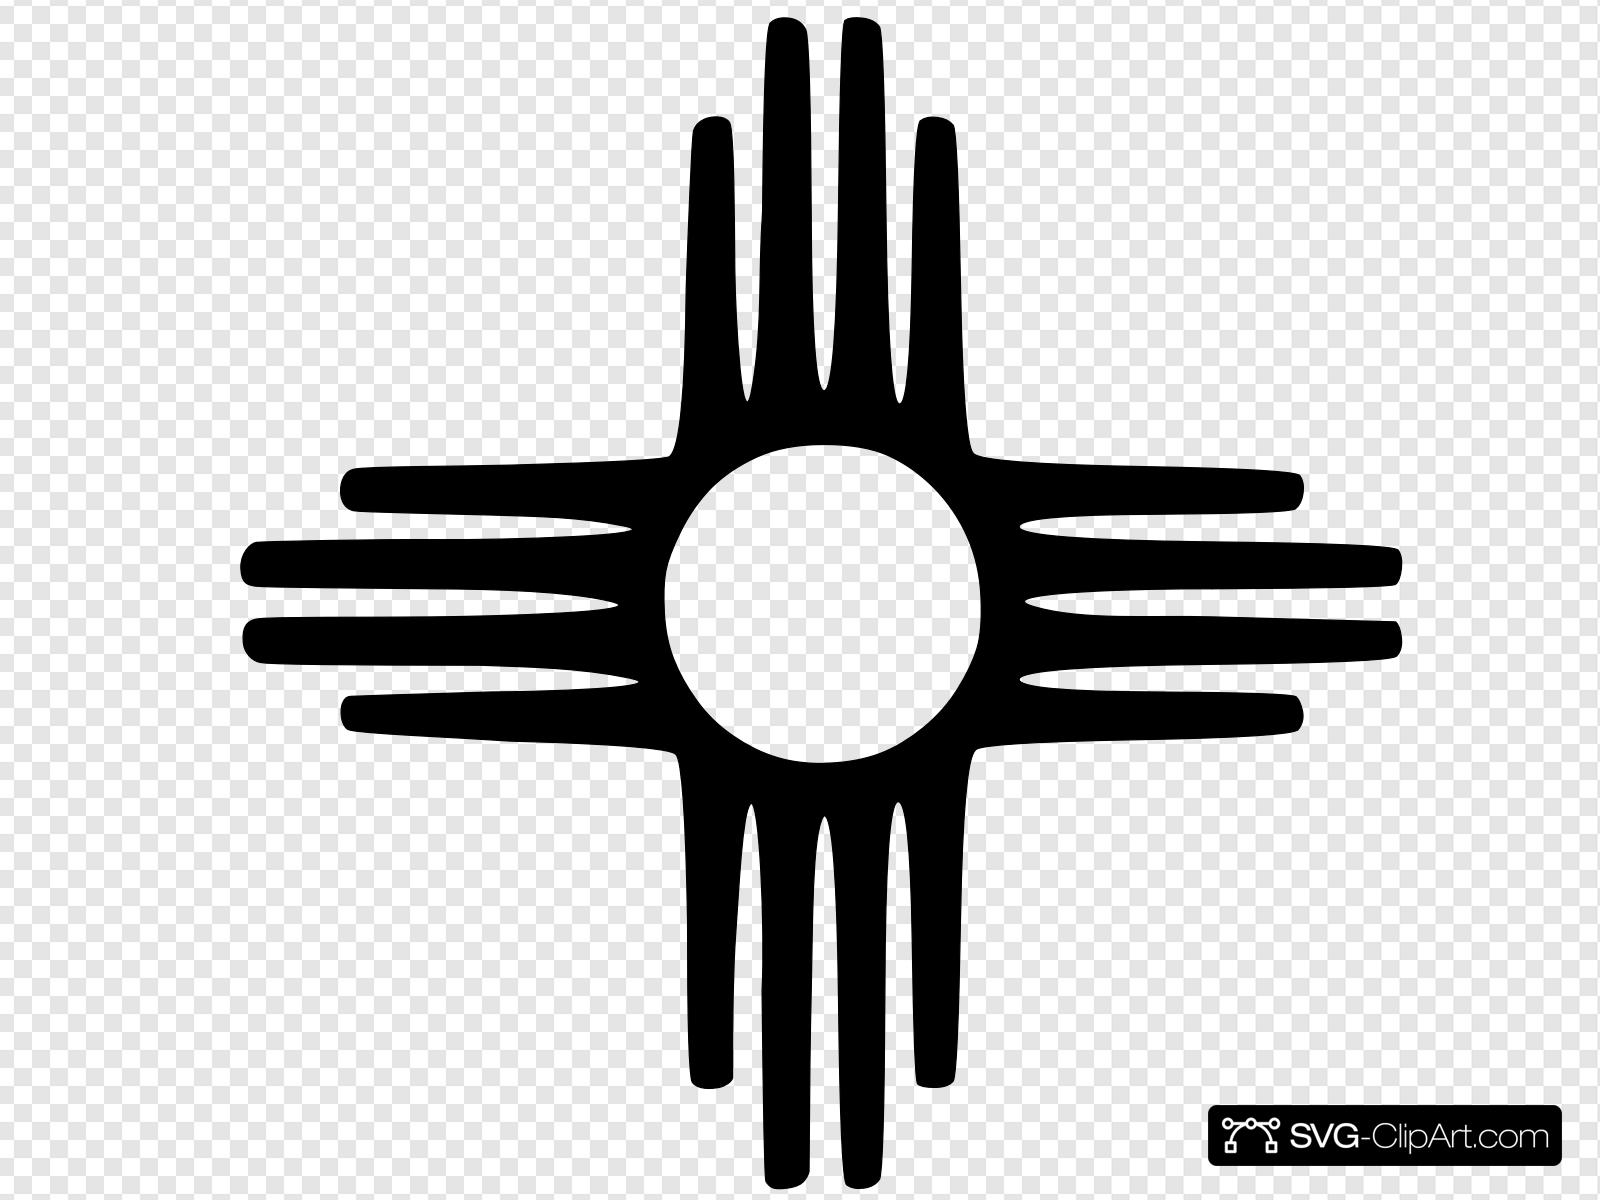 New Mexico Zia By Nicola Clip art, Icon and SVG.